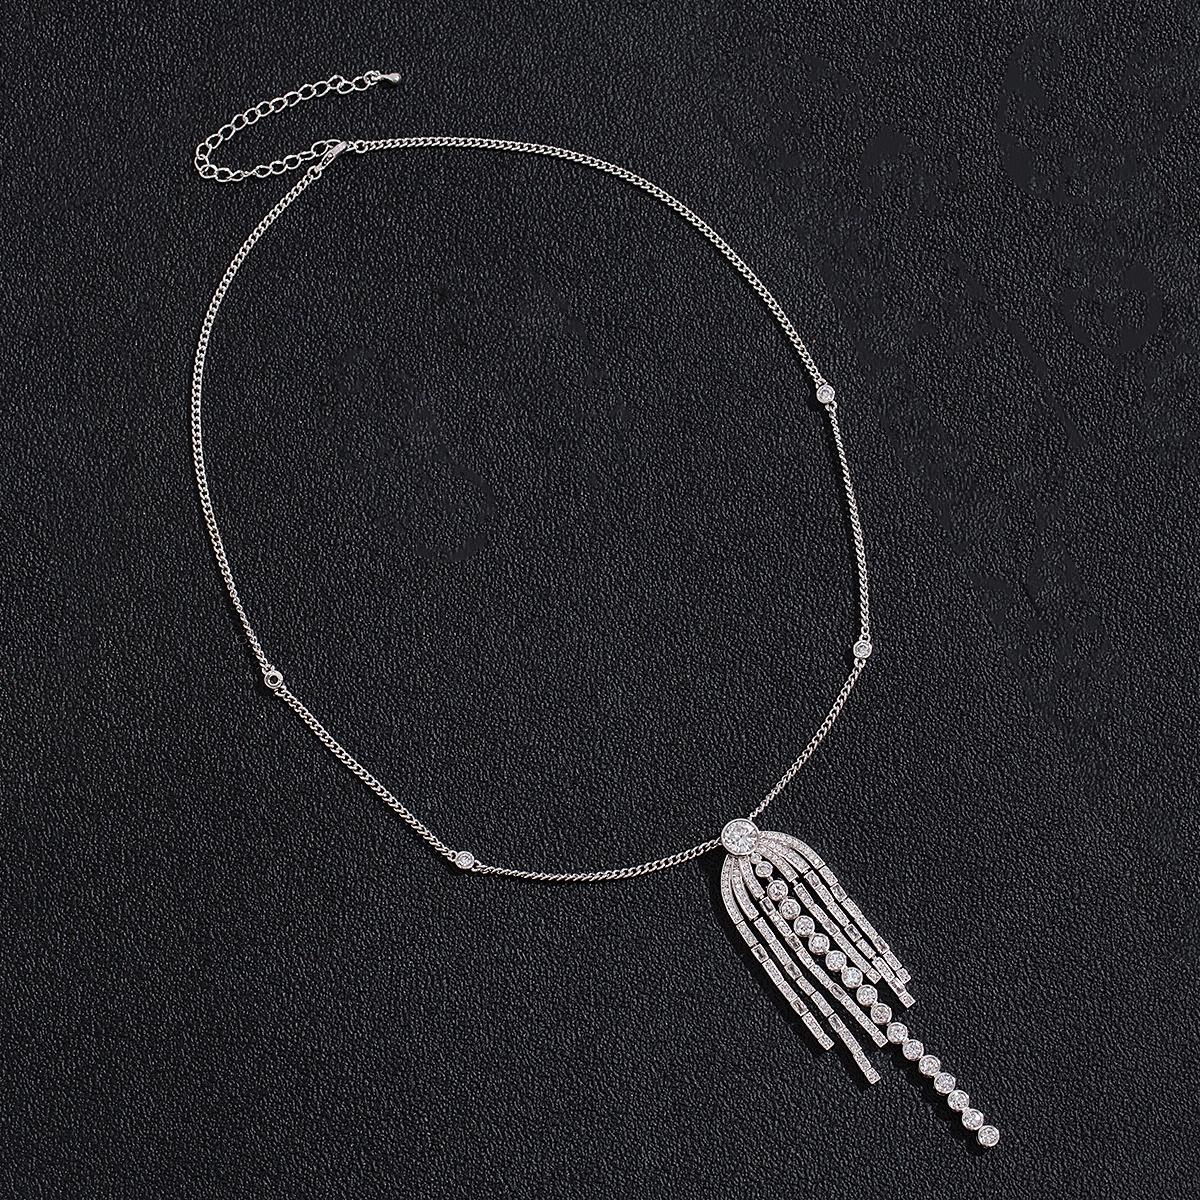 Long Cubic Zircon Fringed Elegant Silver Necklace Accessory Jewelry For Lady